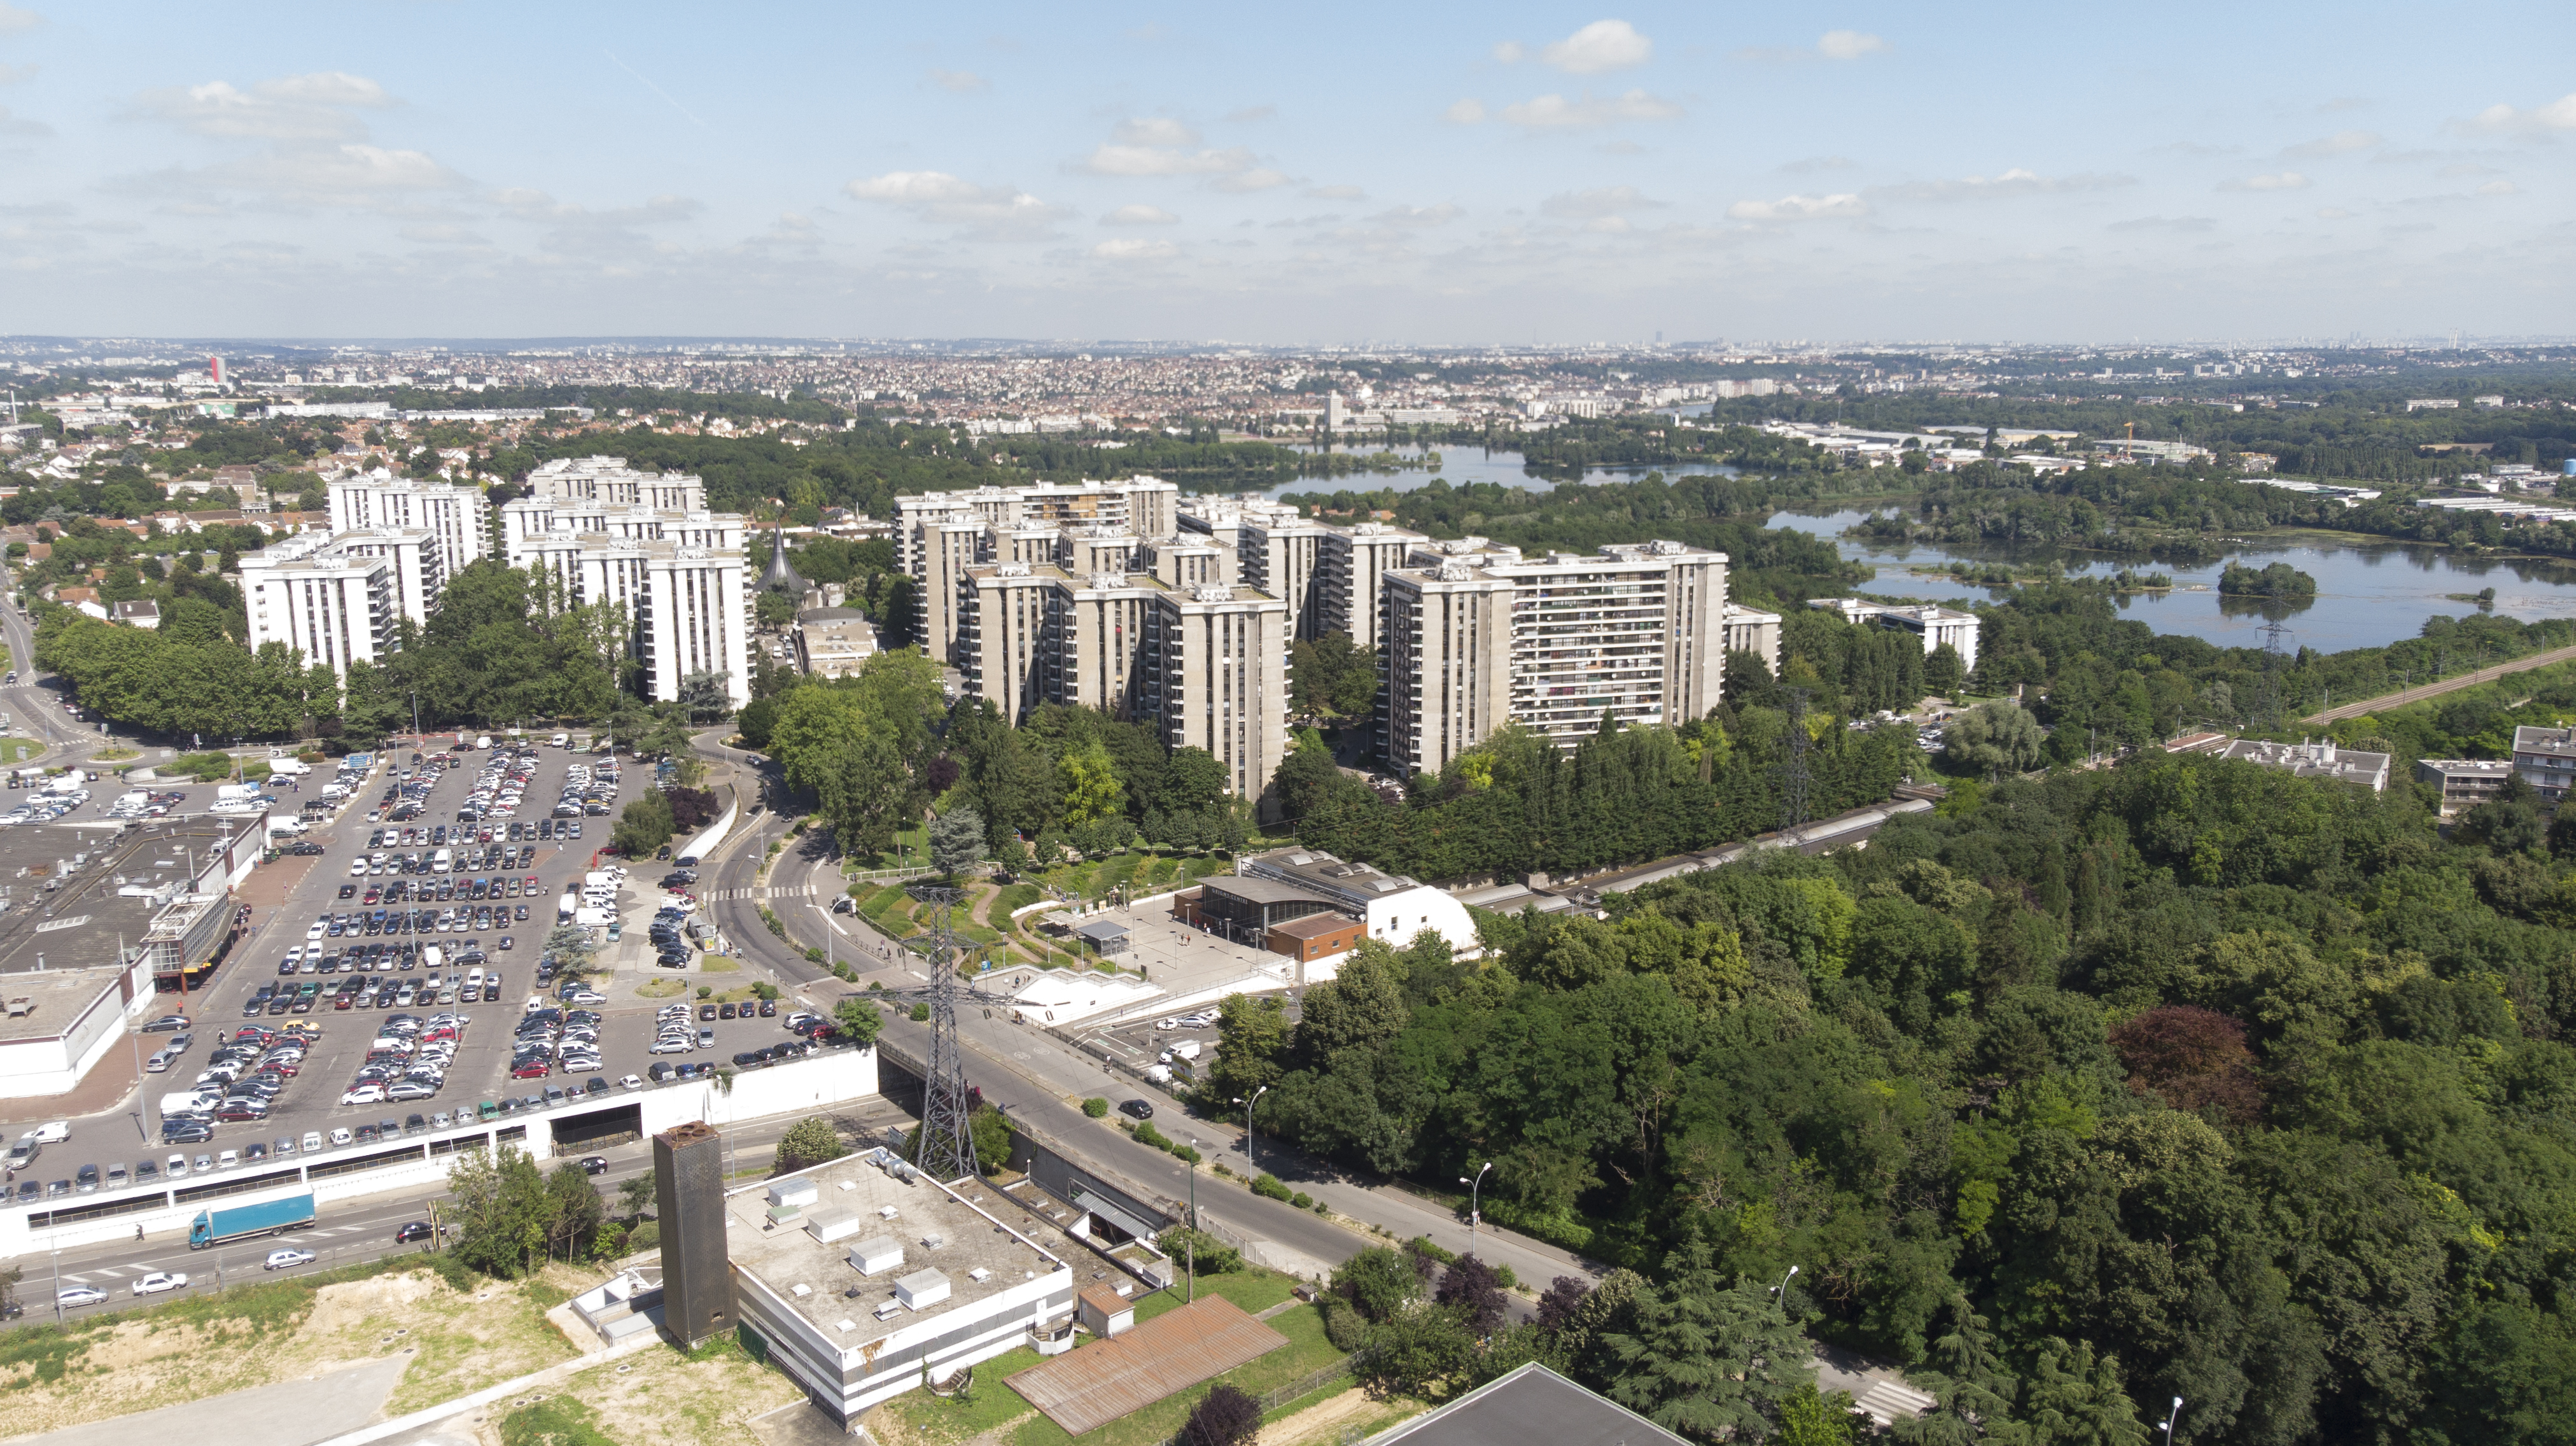 Grigny 2 DJI_0203 -®Thierry Beaucap